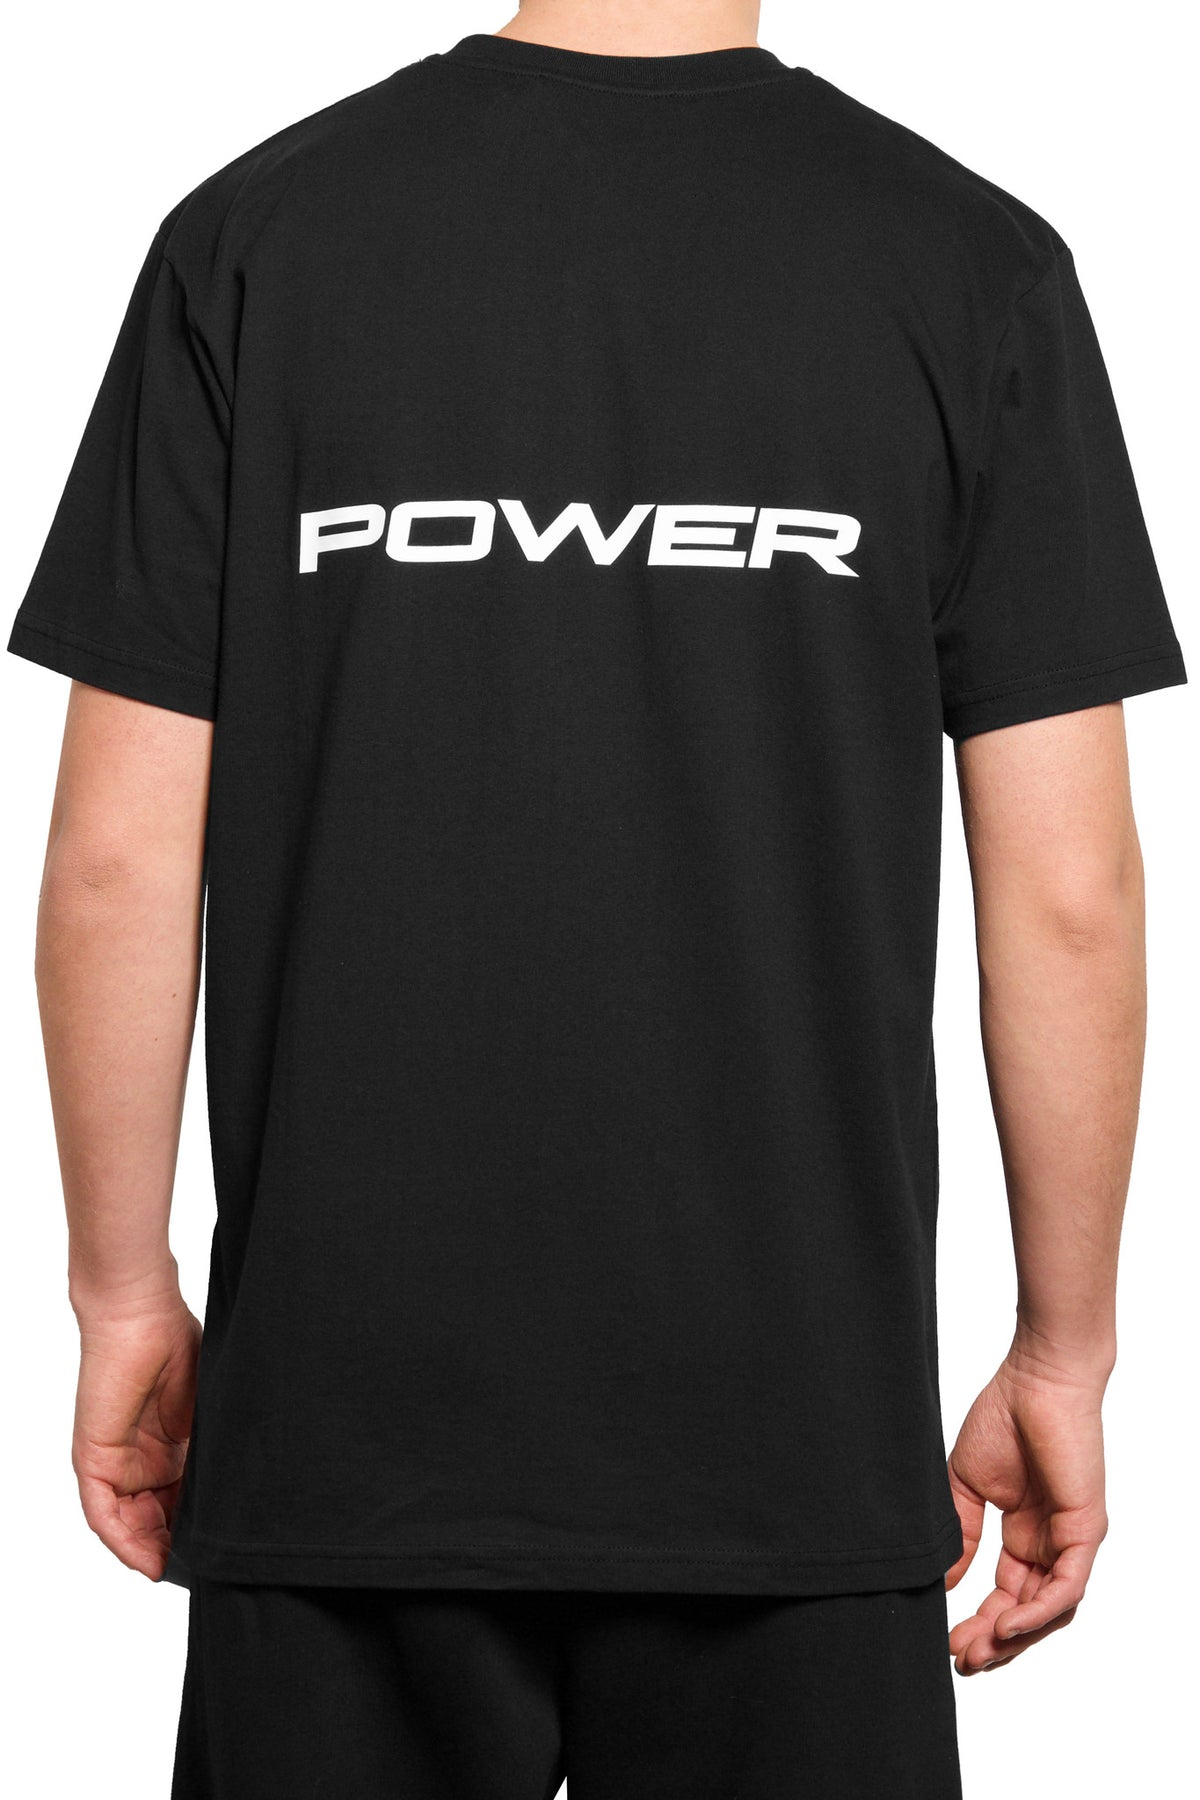 032c Motocross T-Shirt black - 032c